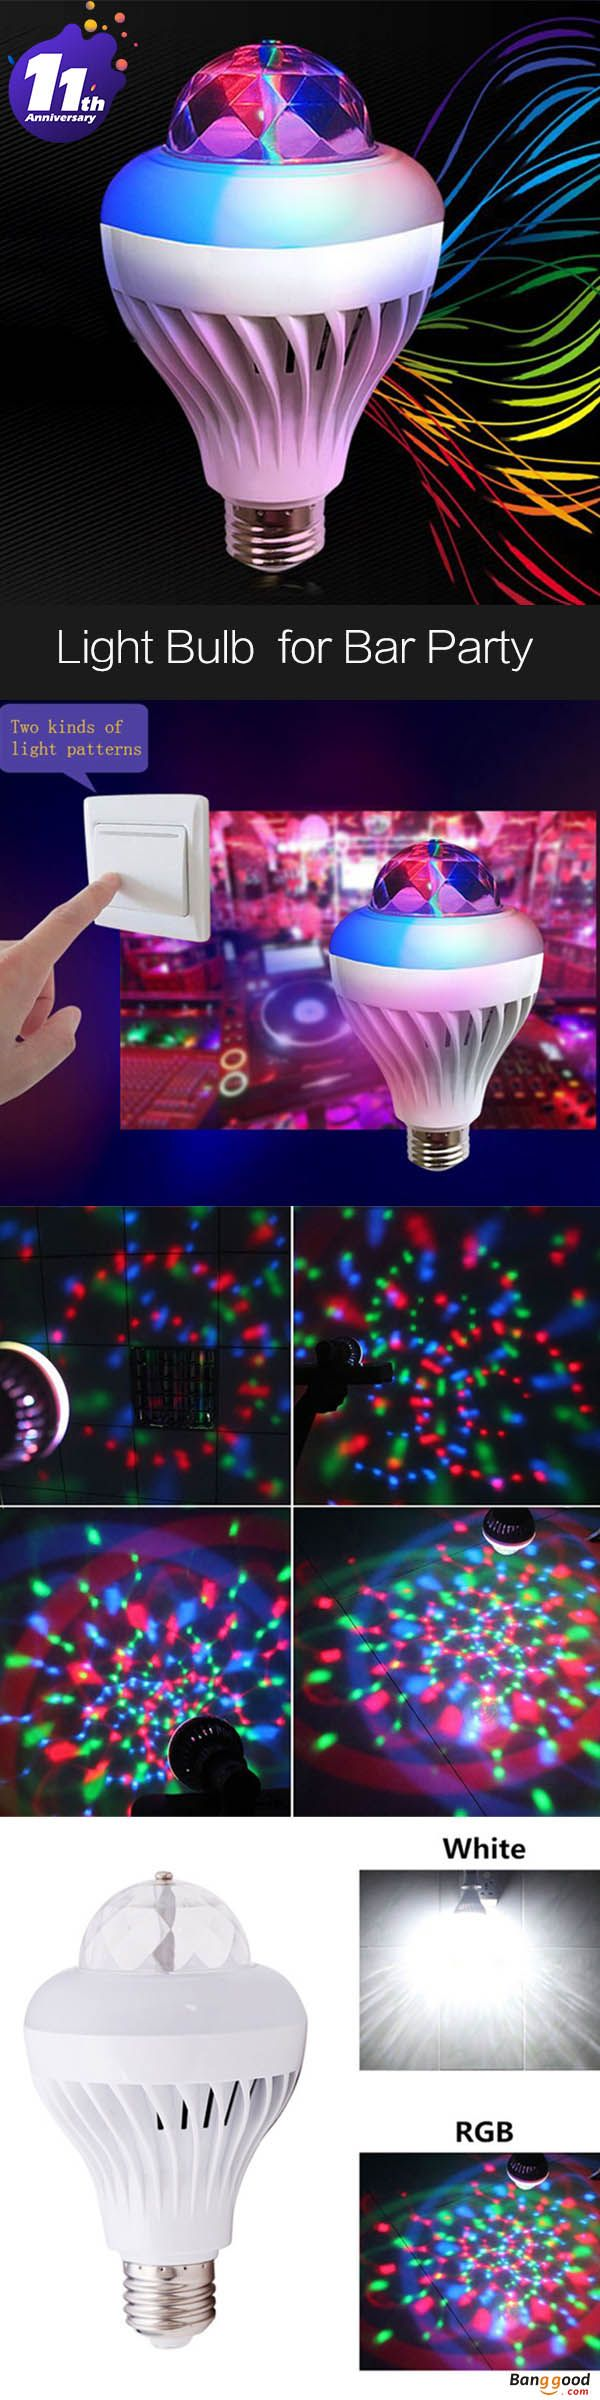 US$4.99 + Free shipping. Colorful 5W E27 Voice Control White RGB Crystal Ball LED Stage Light Bulb for Disco Bar Party. Power: 5W.  Light Color: RGB/White >>> To view further, visit now.